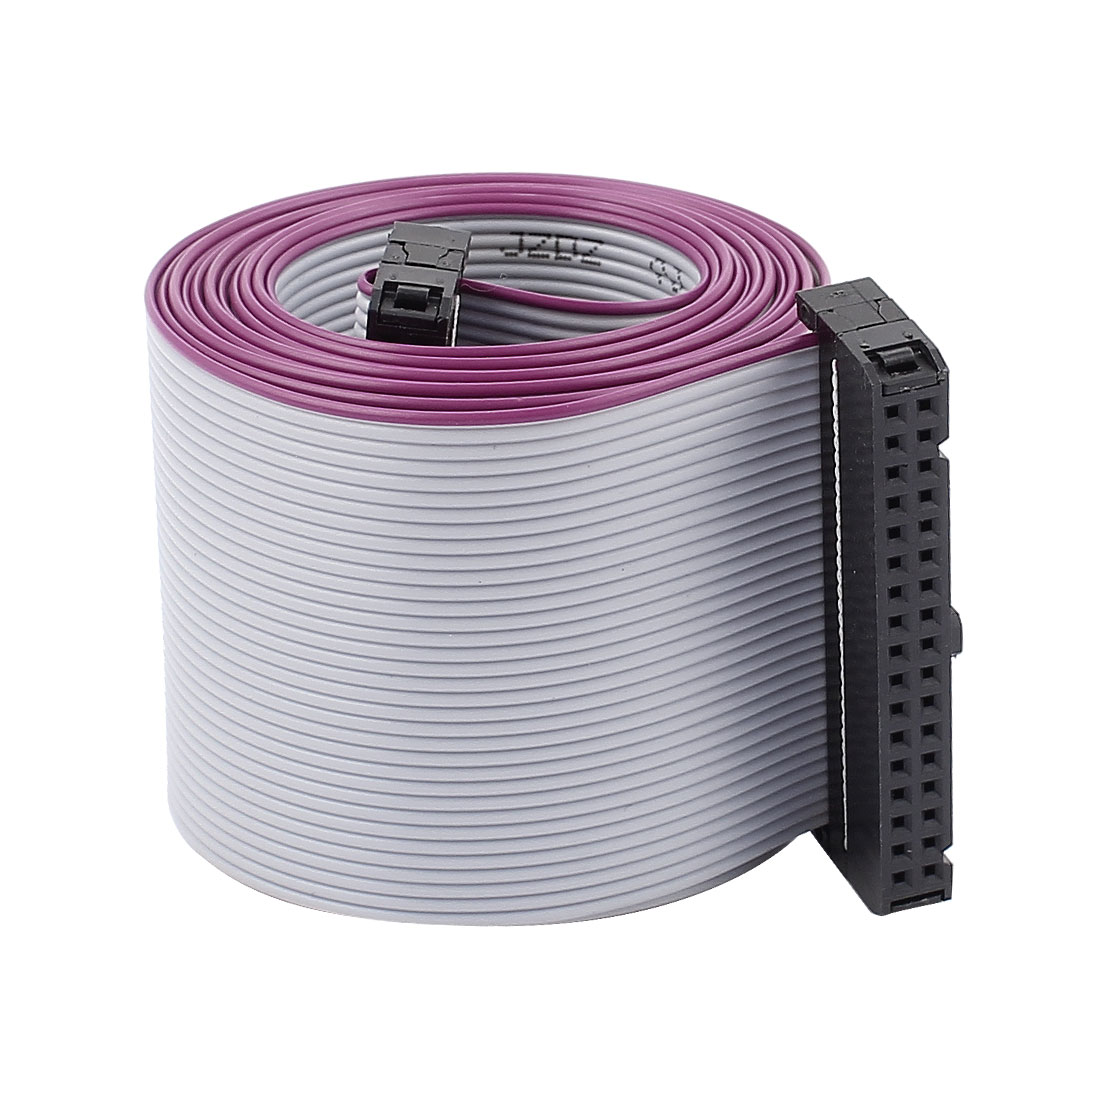 2.54mm Pitch 34 Pin F/F Connector IDC Flat Ribbon Cable 148cm Length